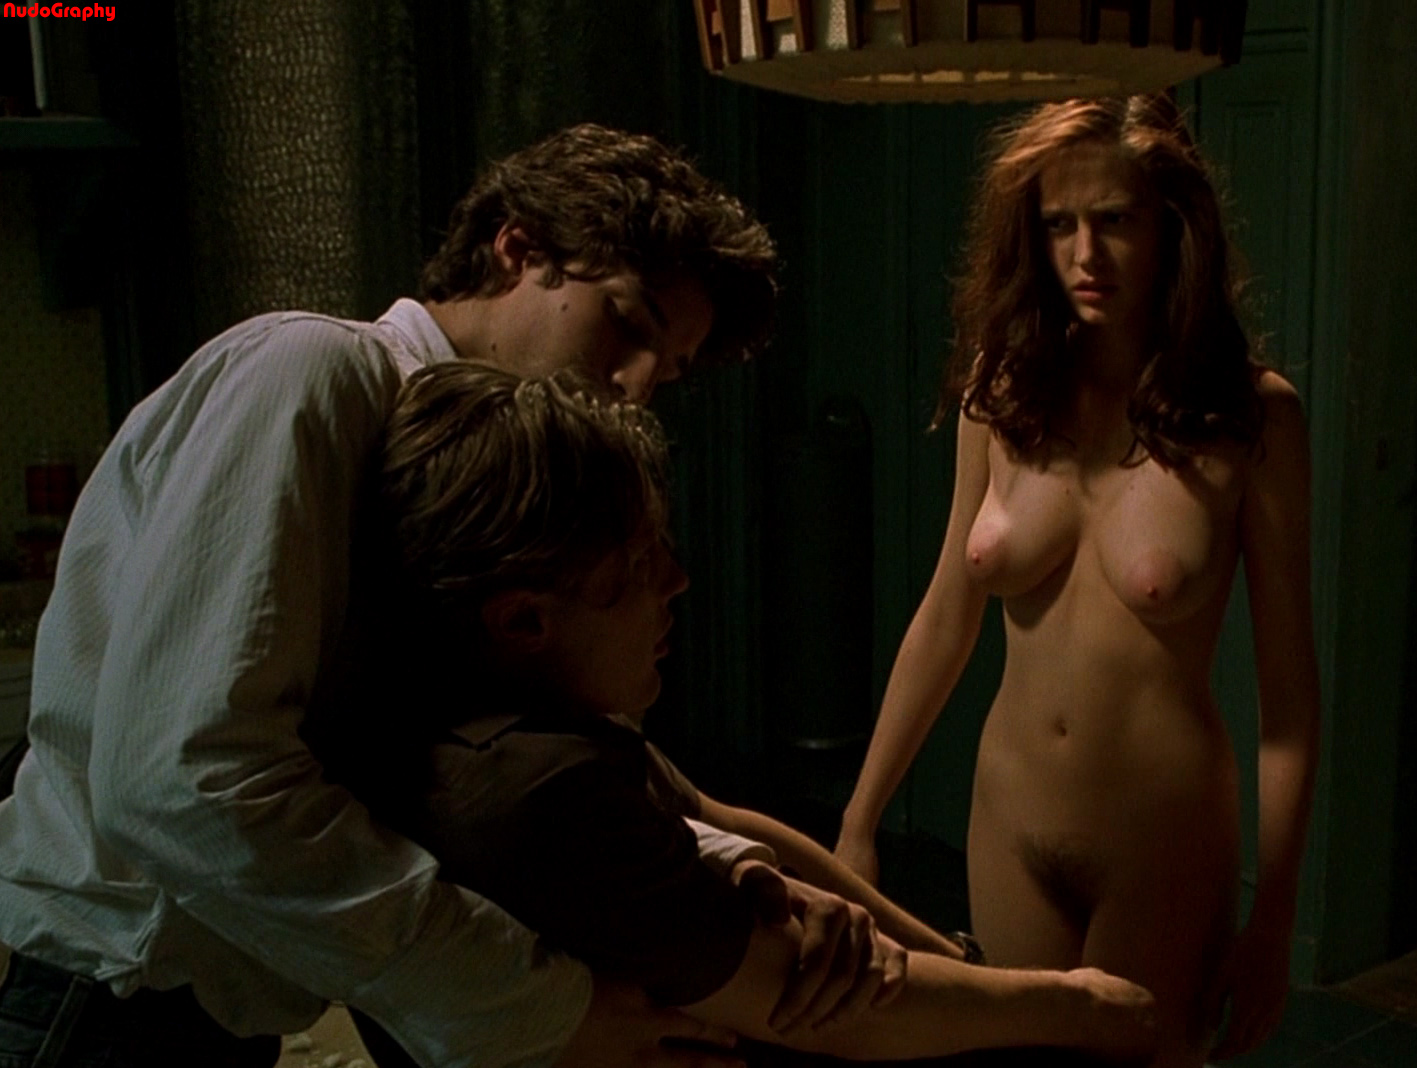 Naked women in cinema — 6